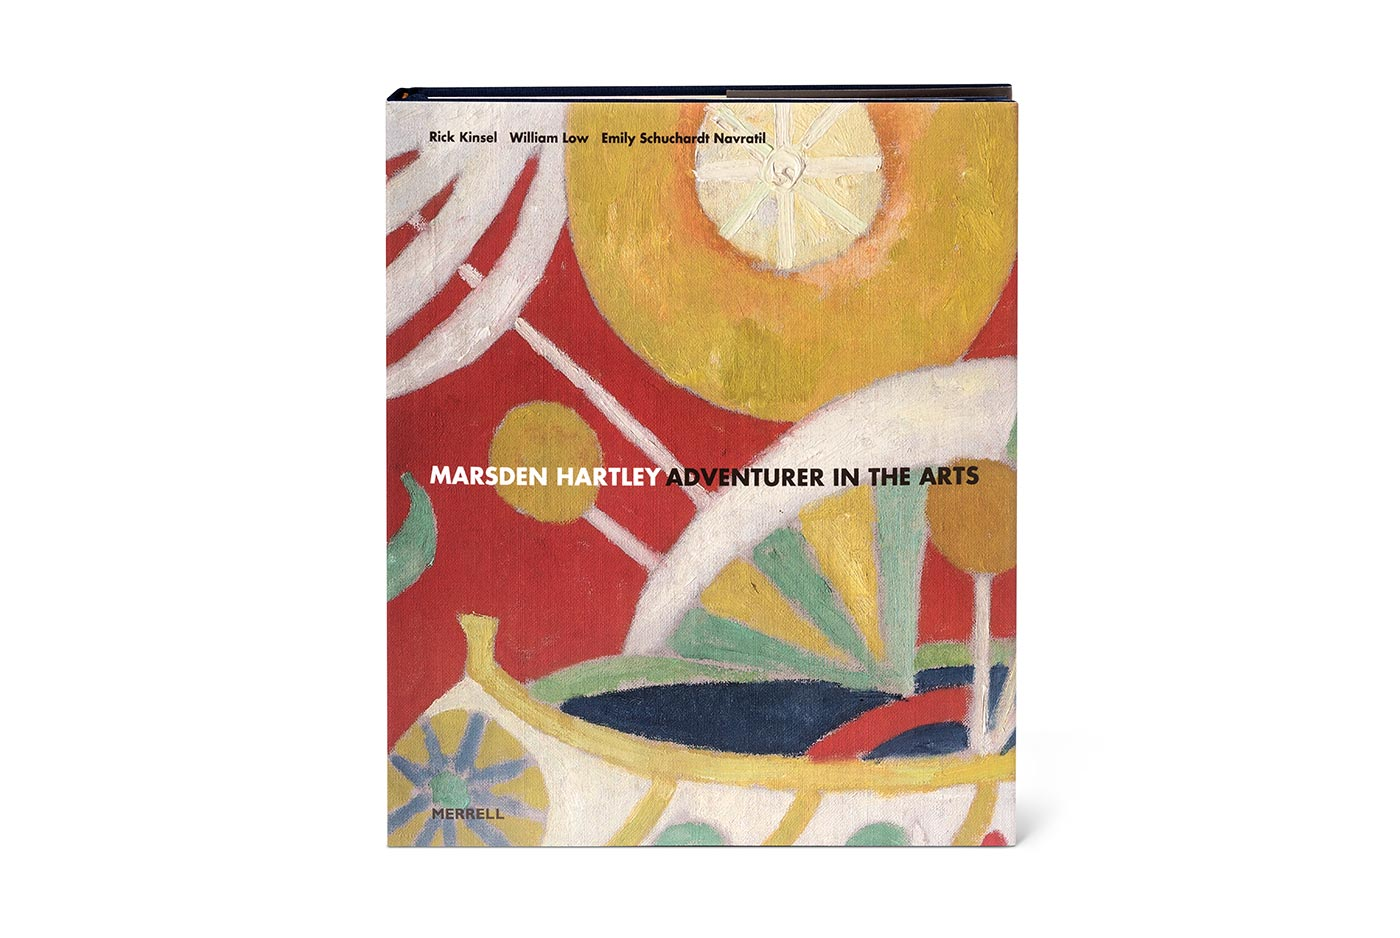 Marsden Hartley: Adventurer in the Arts